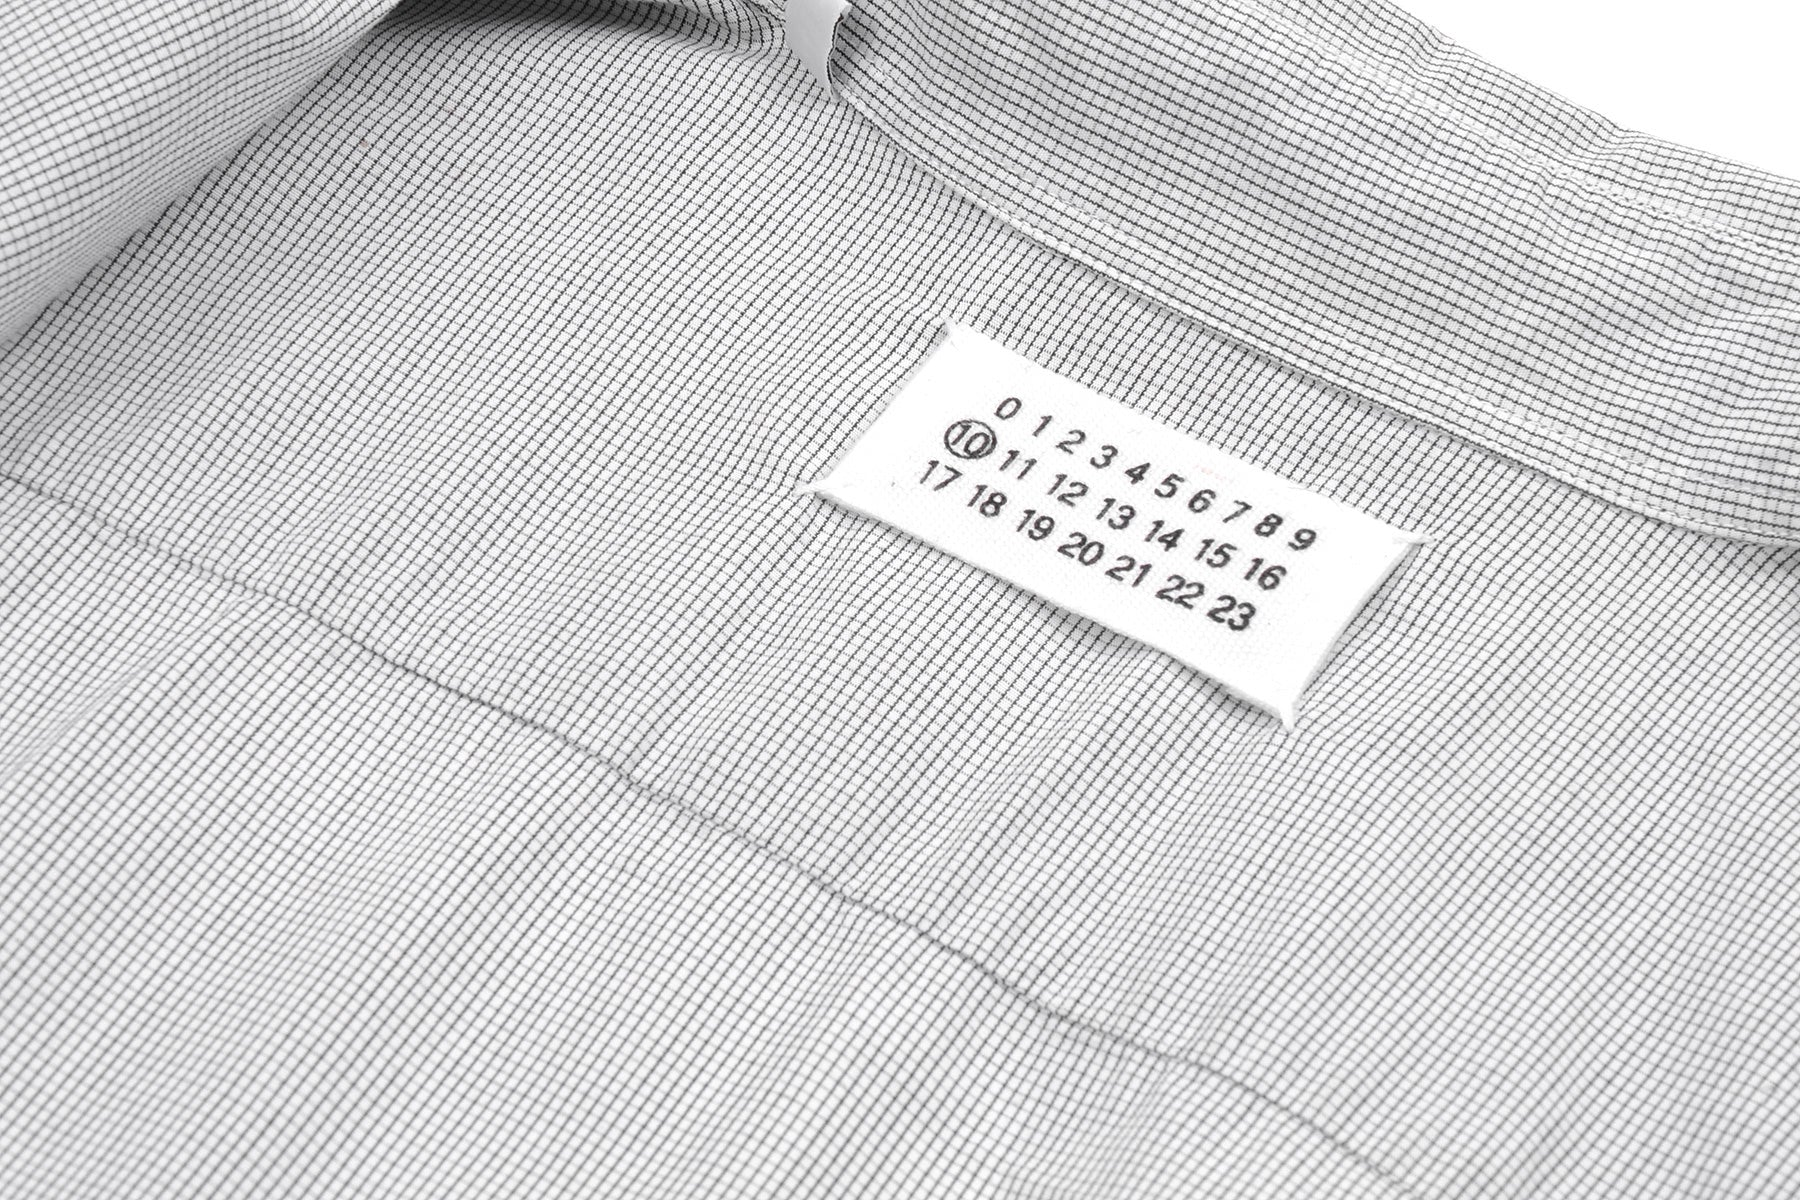 2004 S/S DECONSTRUCTED MICRO CHECK SHIRT WITH CUT-OUT POCKET